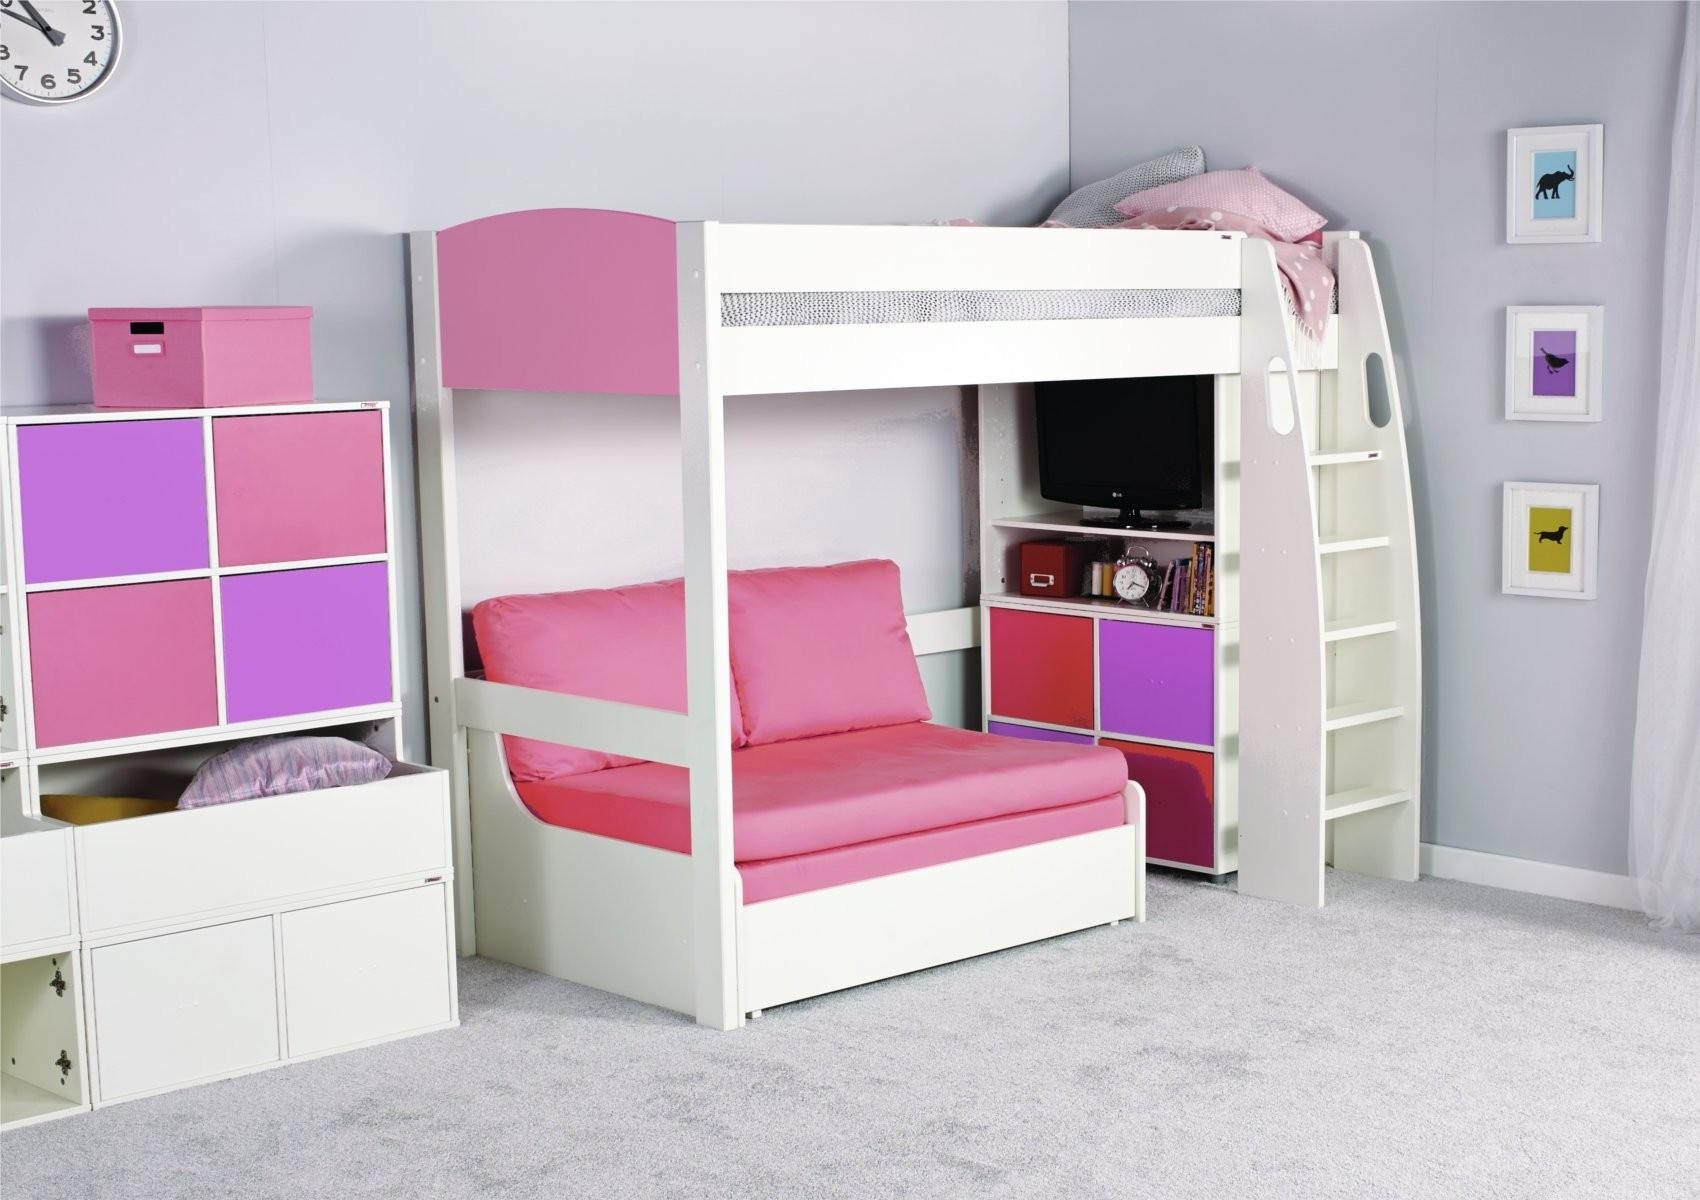 Stompa Children's Beds & Bedroom Furniture At Time 4 Sleep Intended For High Sleeper With Desk And Sofa (View 9 of 20)